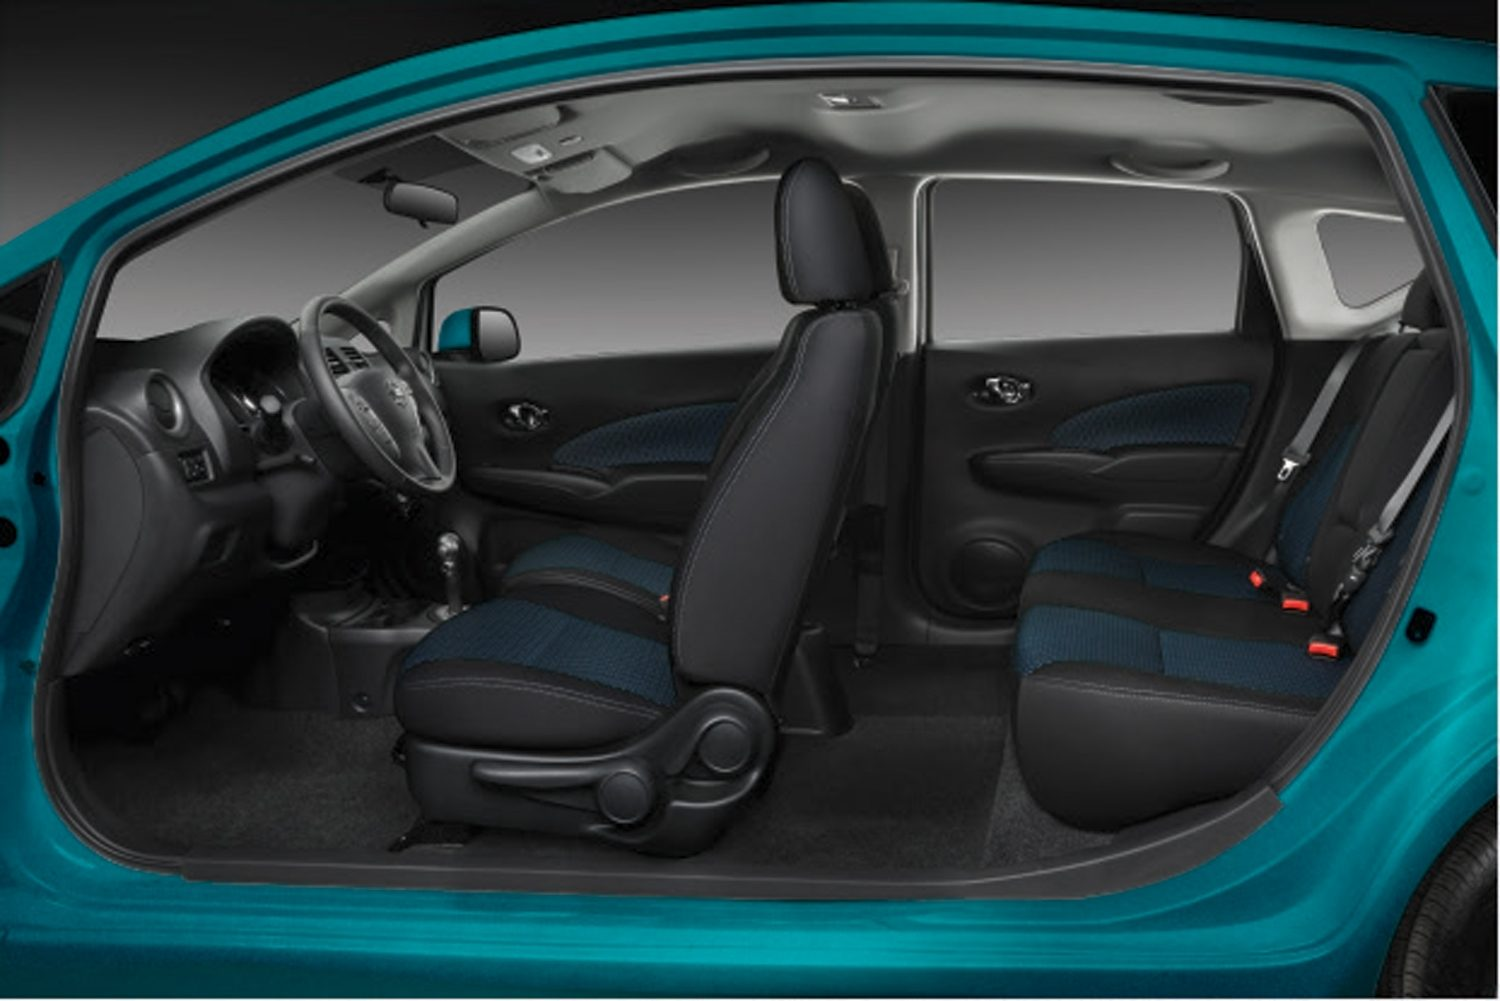 05-NISSAN-NOTE-18.jpg.ximg.l_full_m.smart